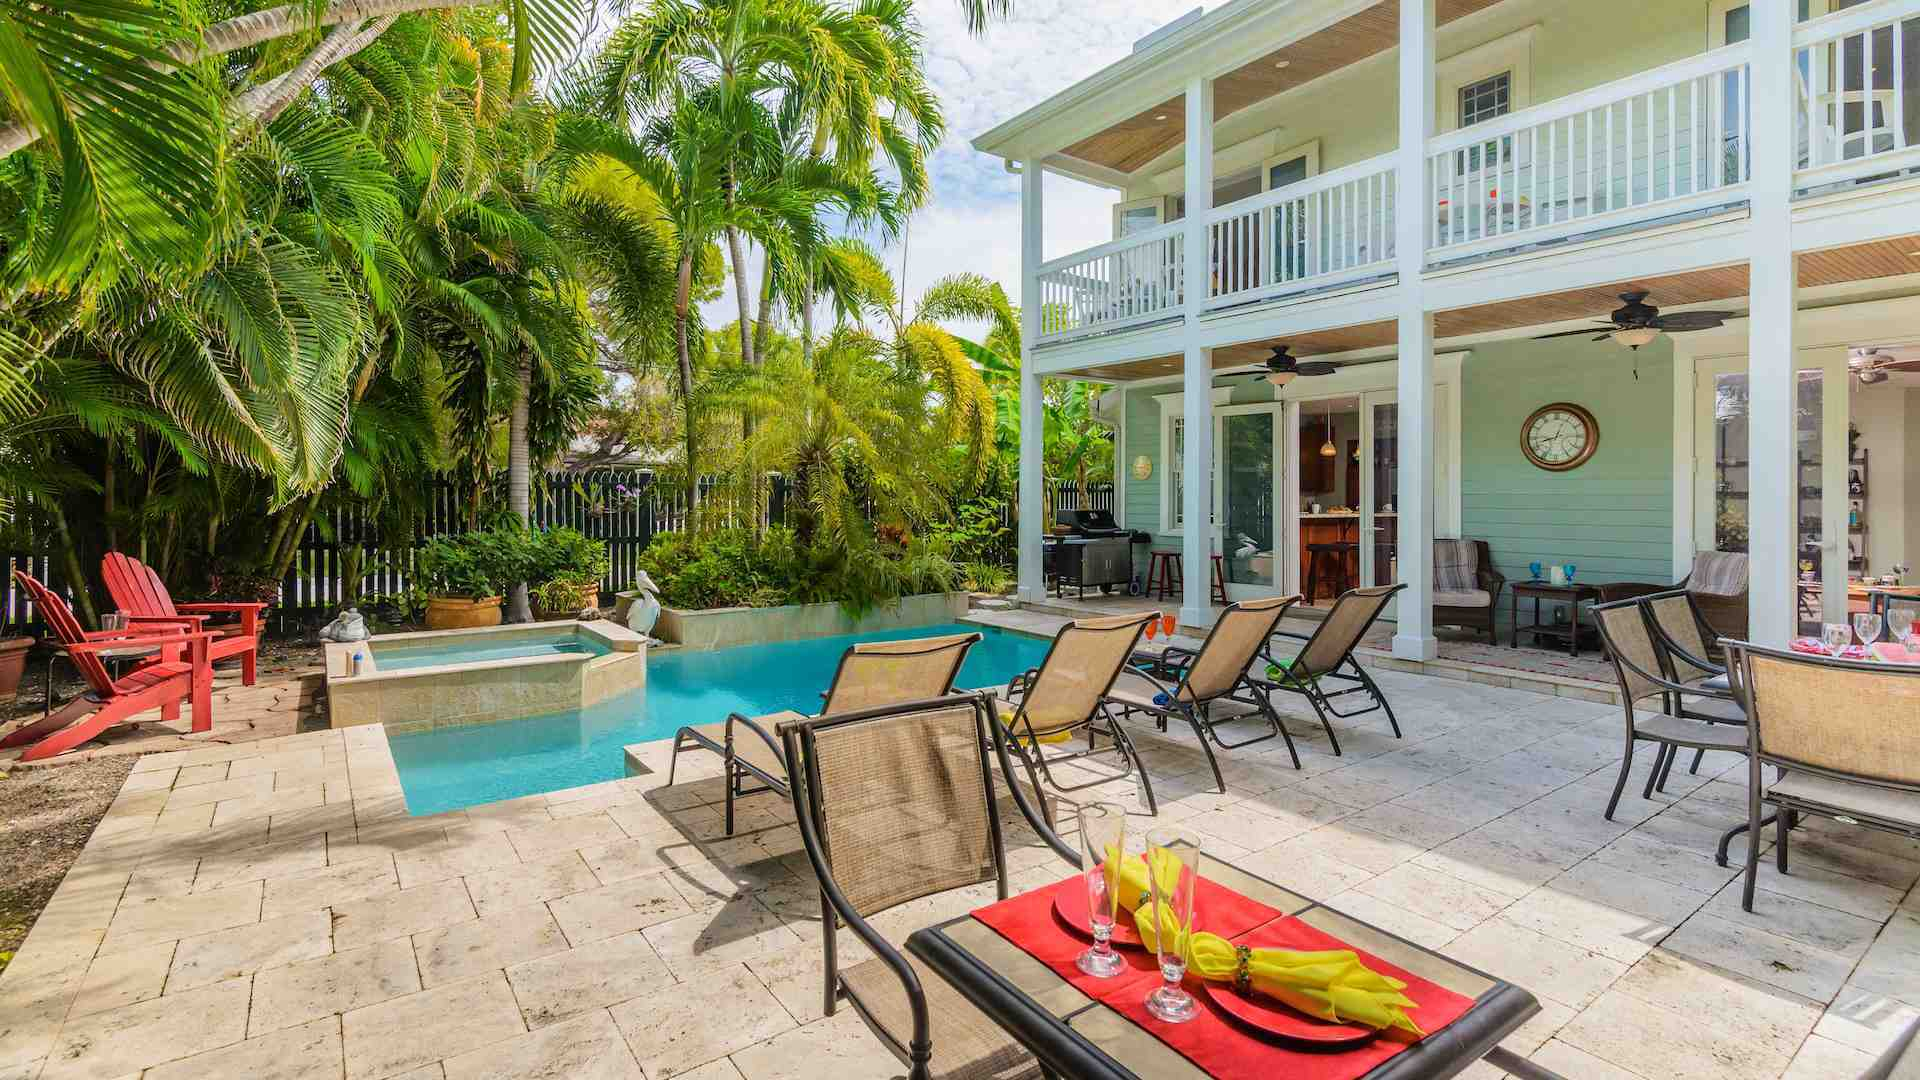 Pet Friendly Old Town Key West monthly vacation home rental with 4 bedrooms and pool